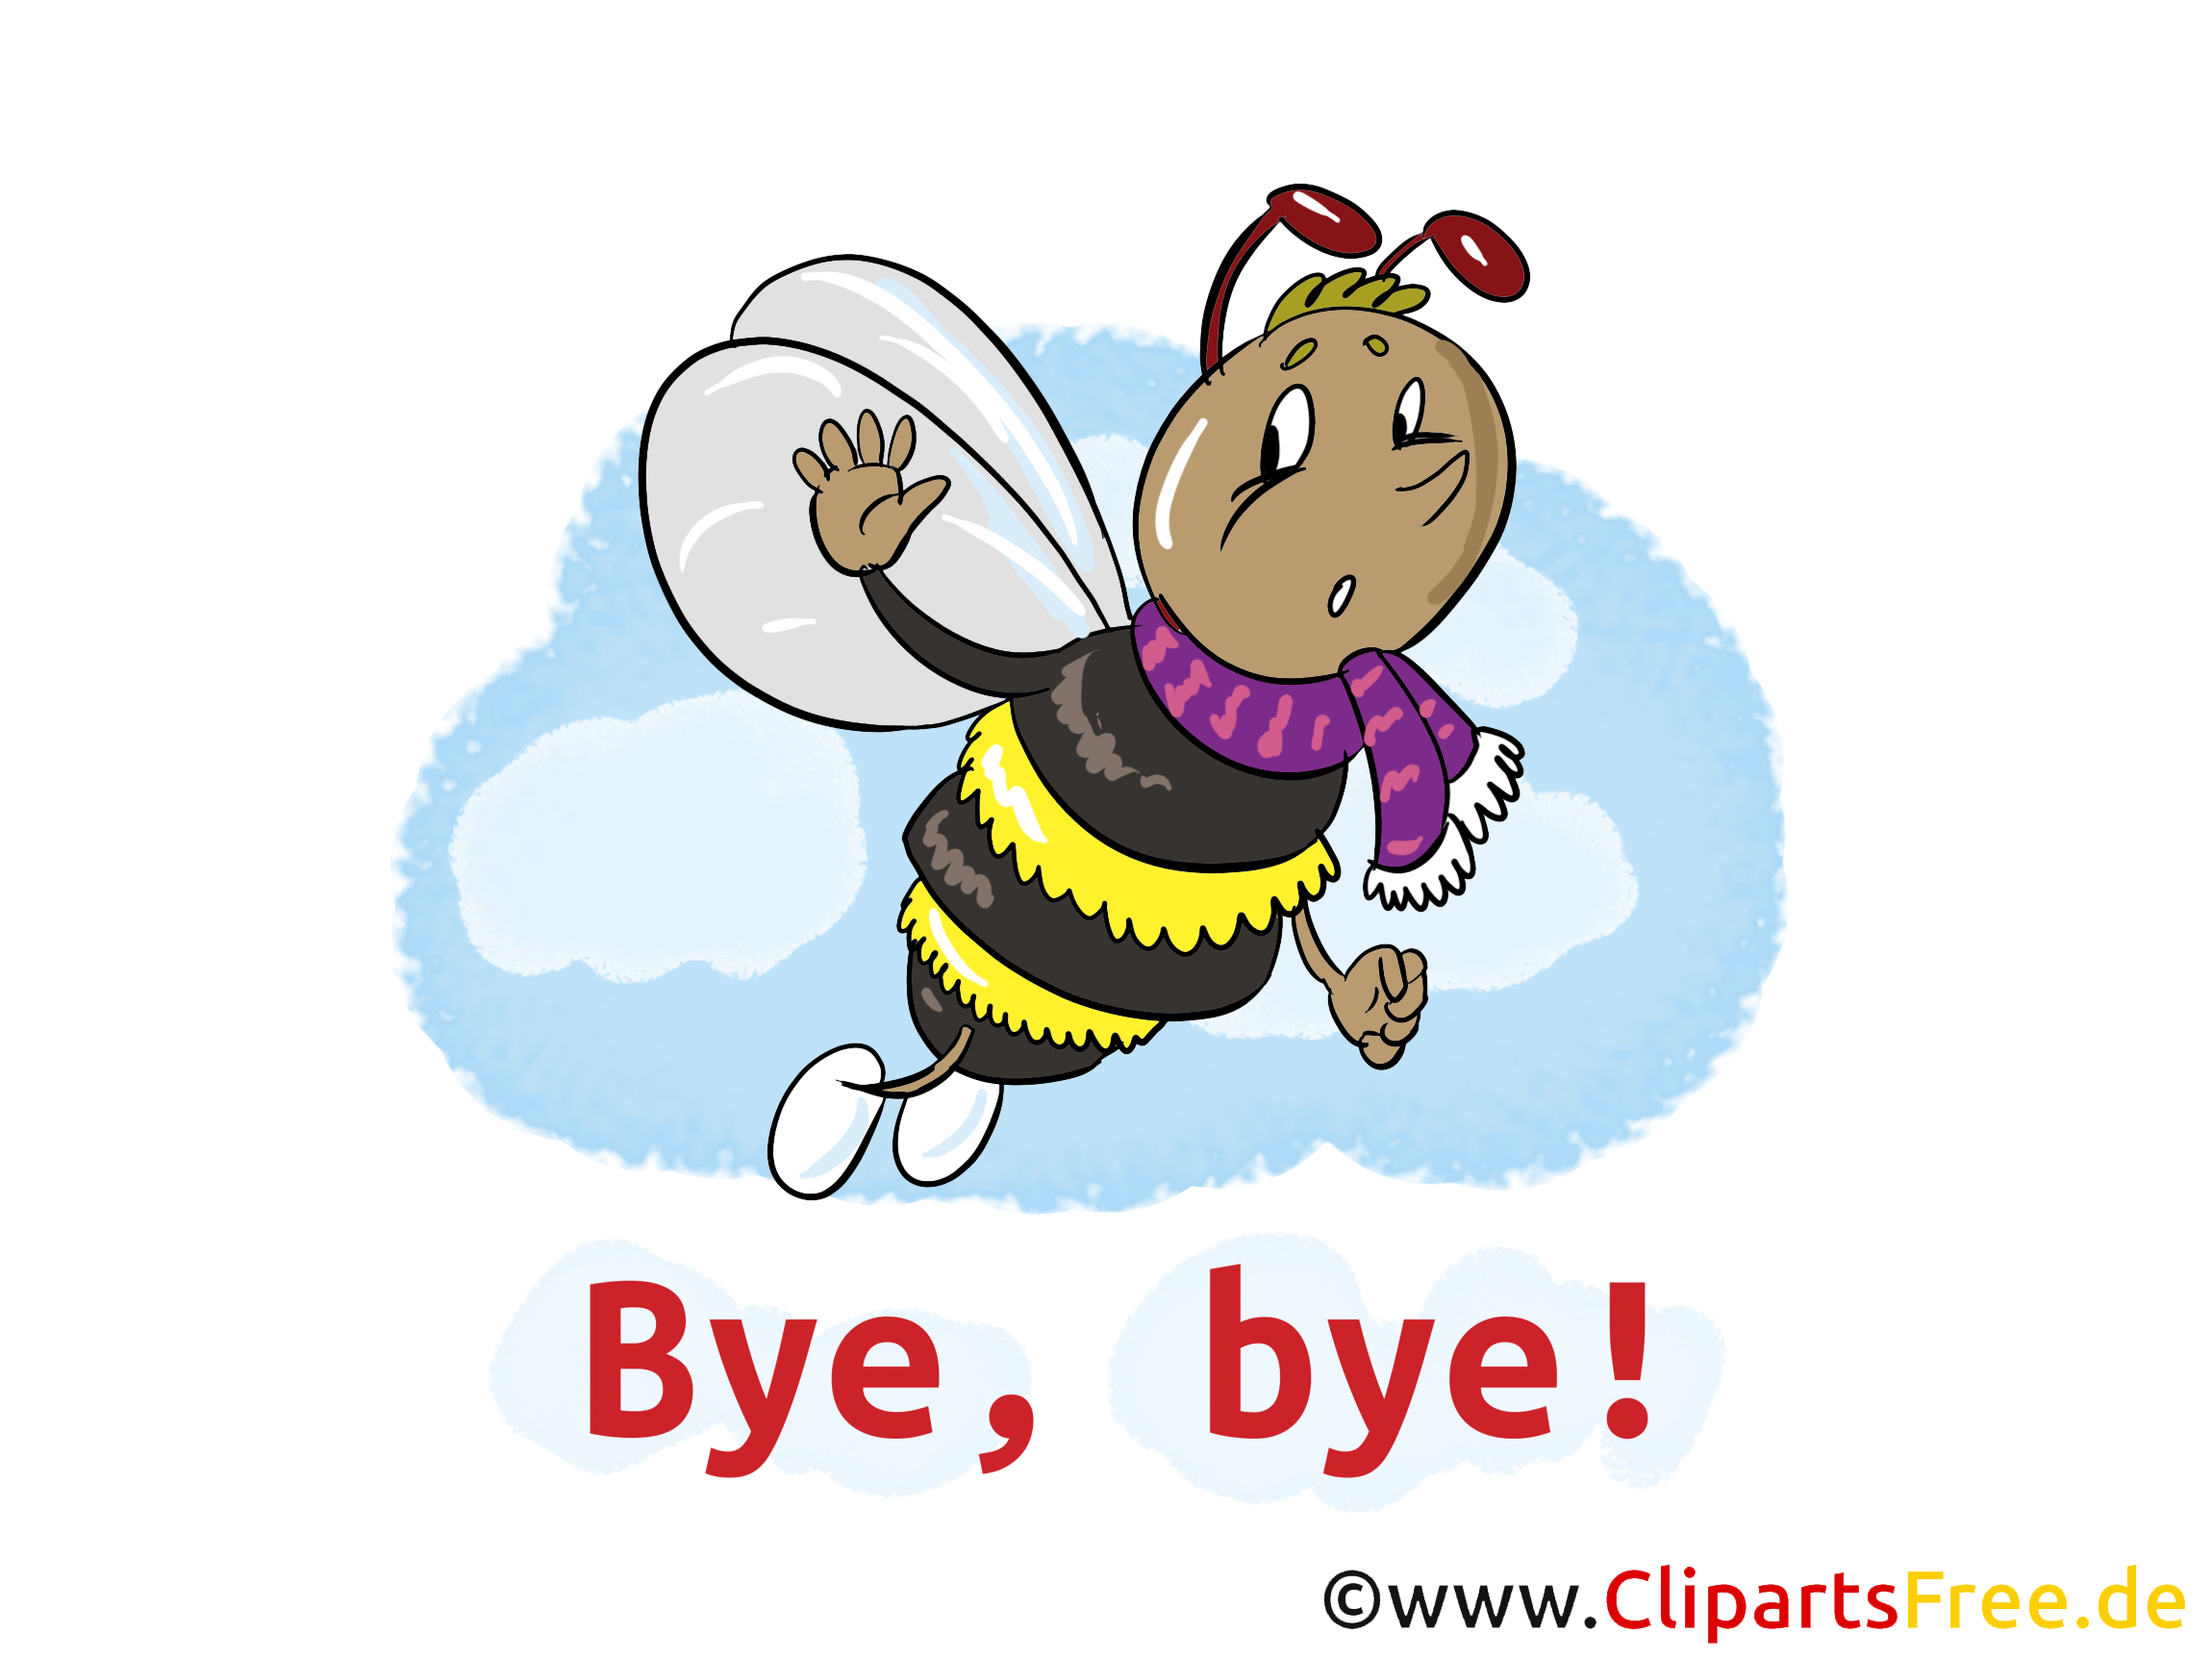 Abschied clipart picture royalty free stock Clipart kollege - ClipartFest picture royalty free stock